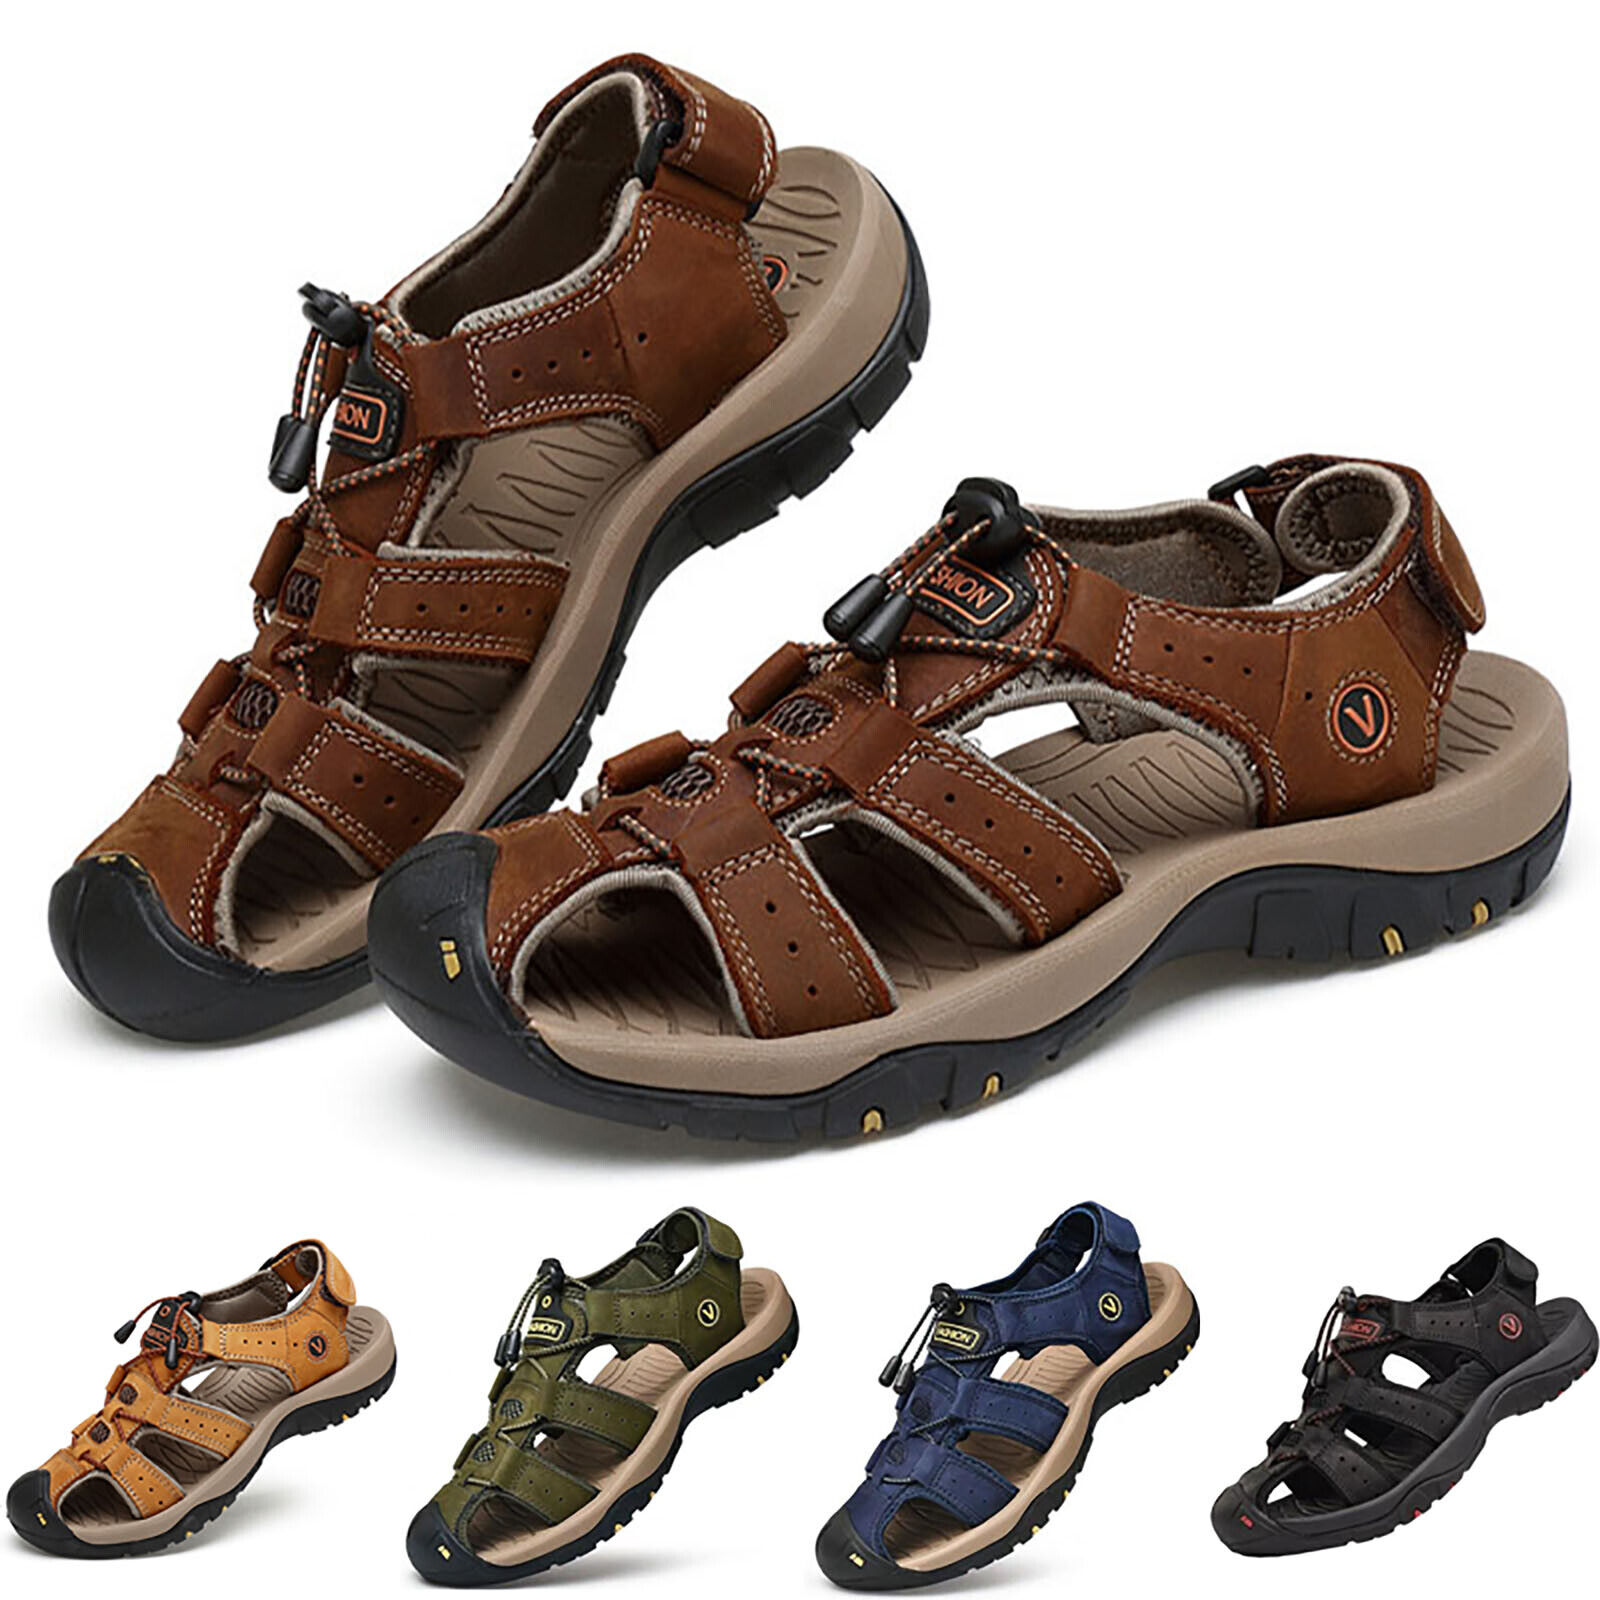 Men's Summer Hiking Leather Sandals Wading Closed Toe Fisherman Soft Beach Shoes 1